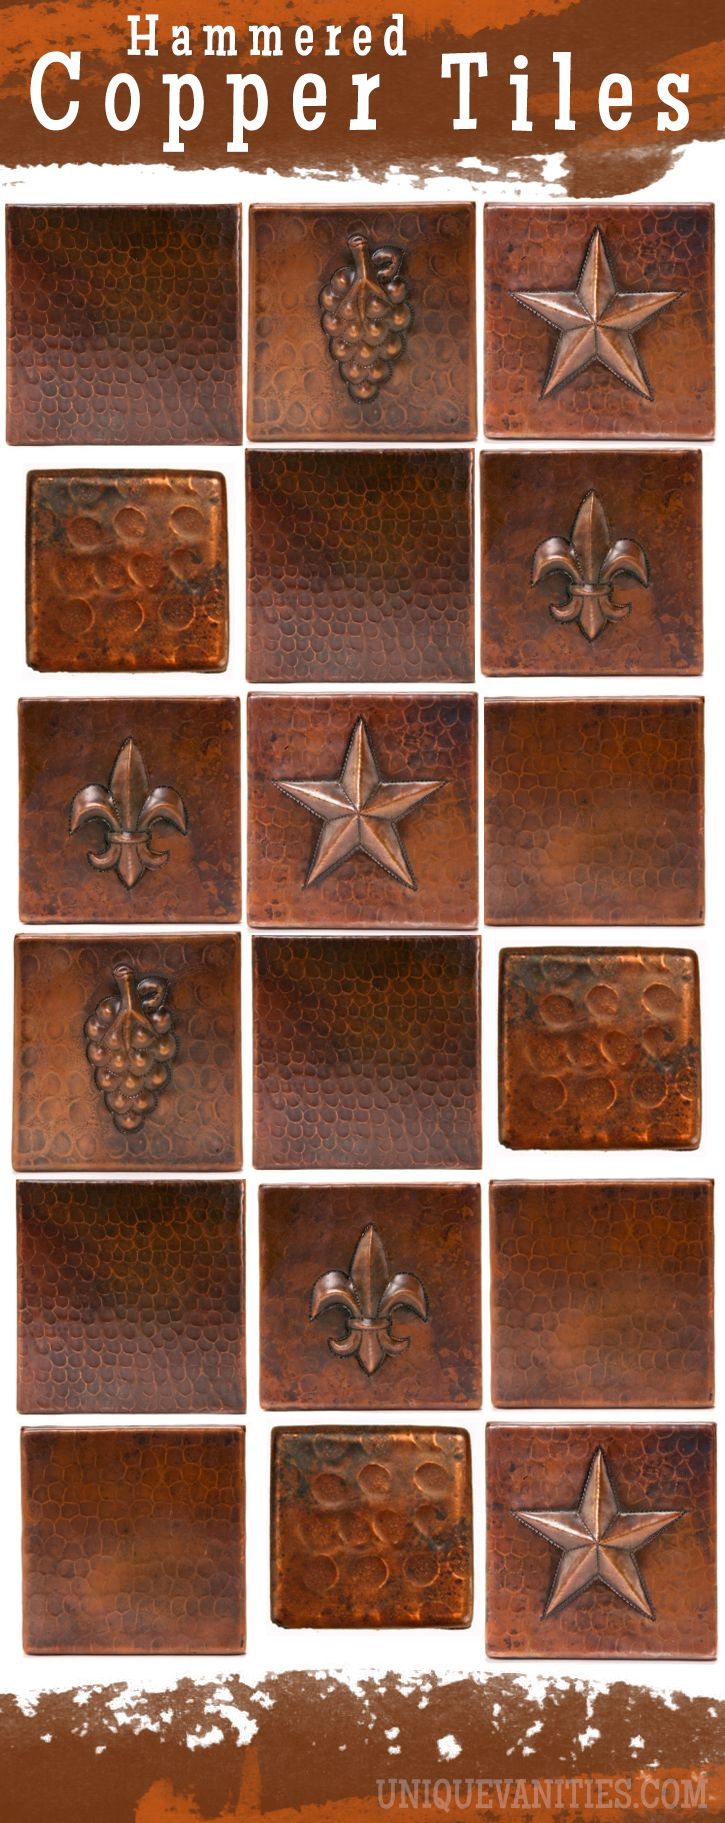 Hammered Copper Tiles Vanities Pinterest Copper